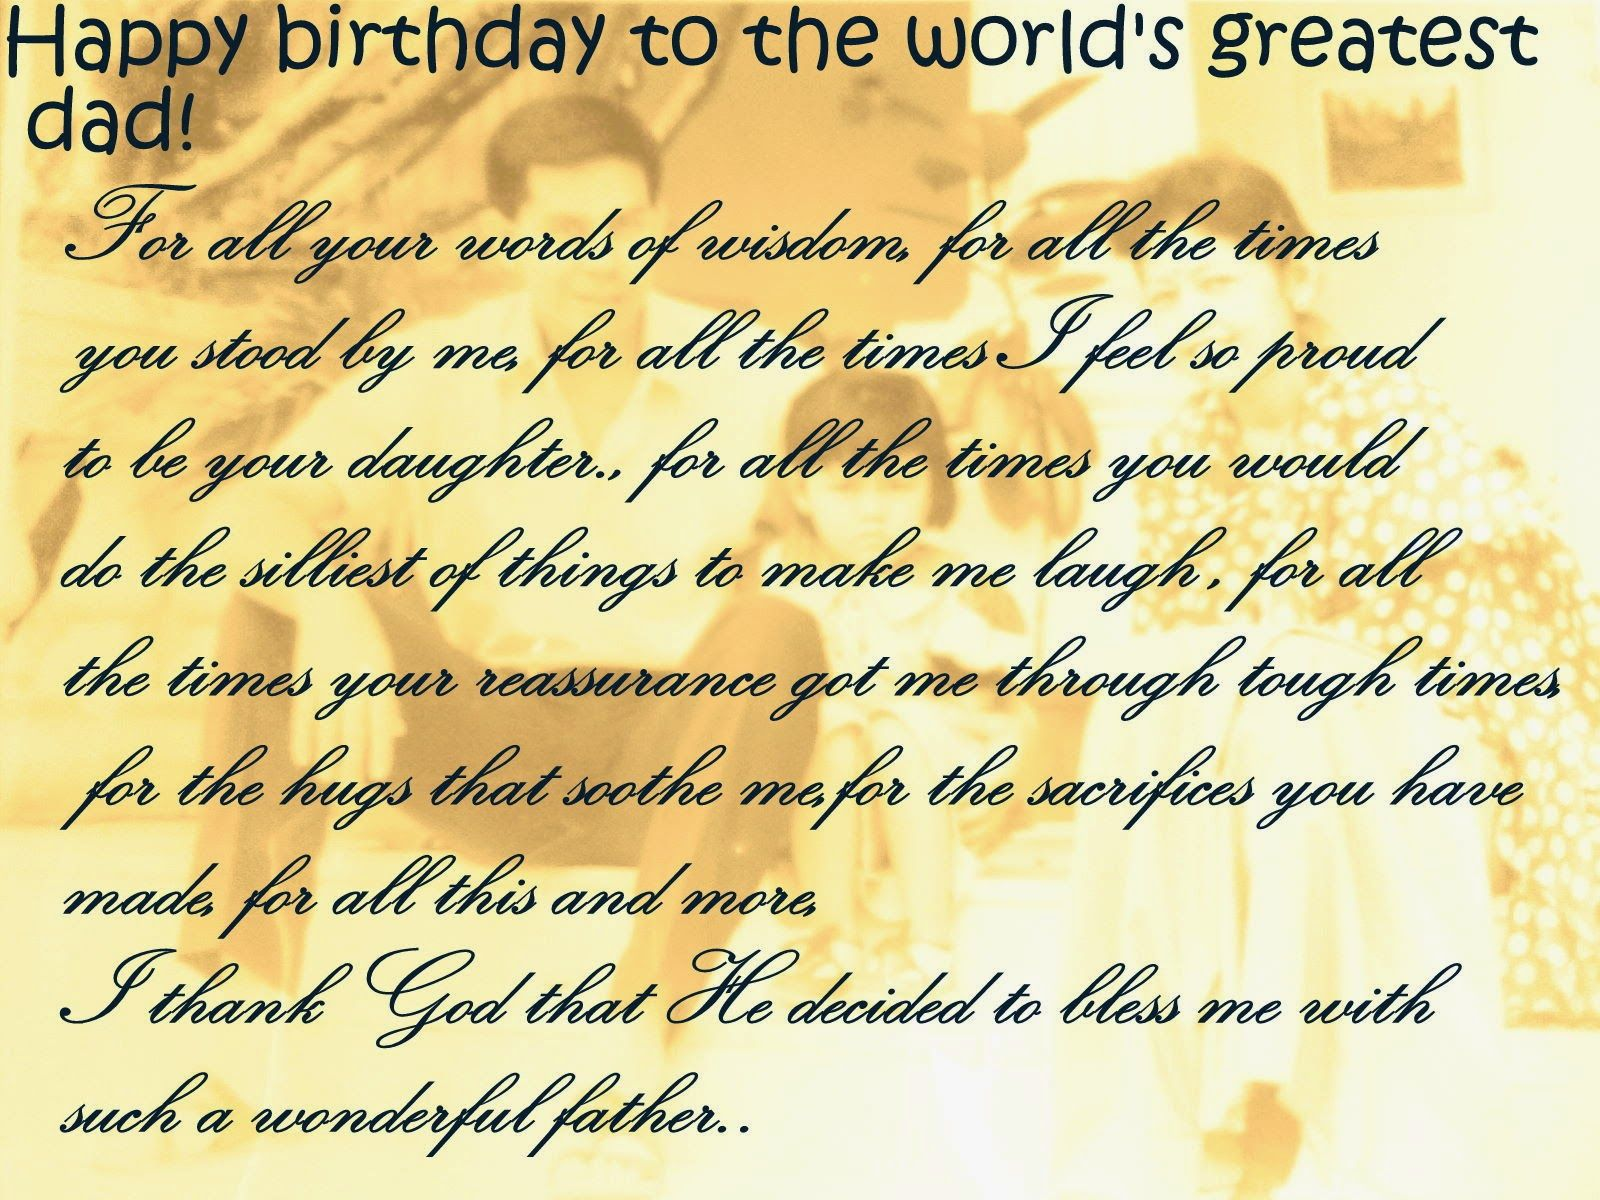 Happy Birthday Dad Quotes For Facebook New world of fun